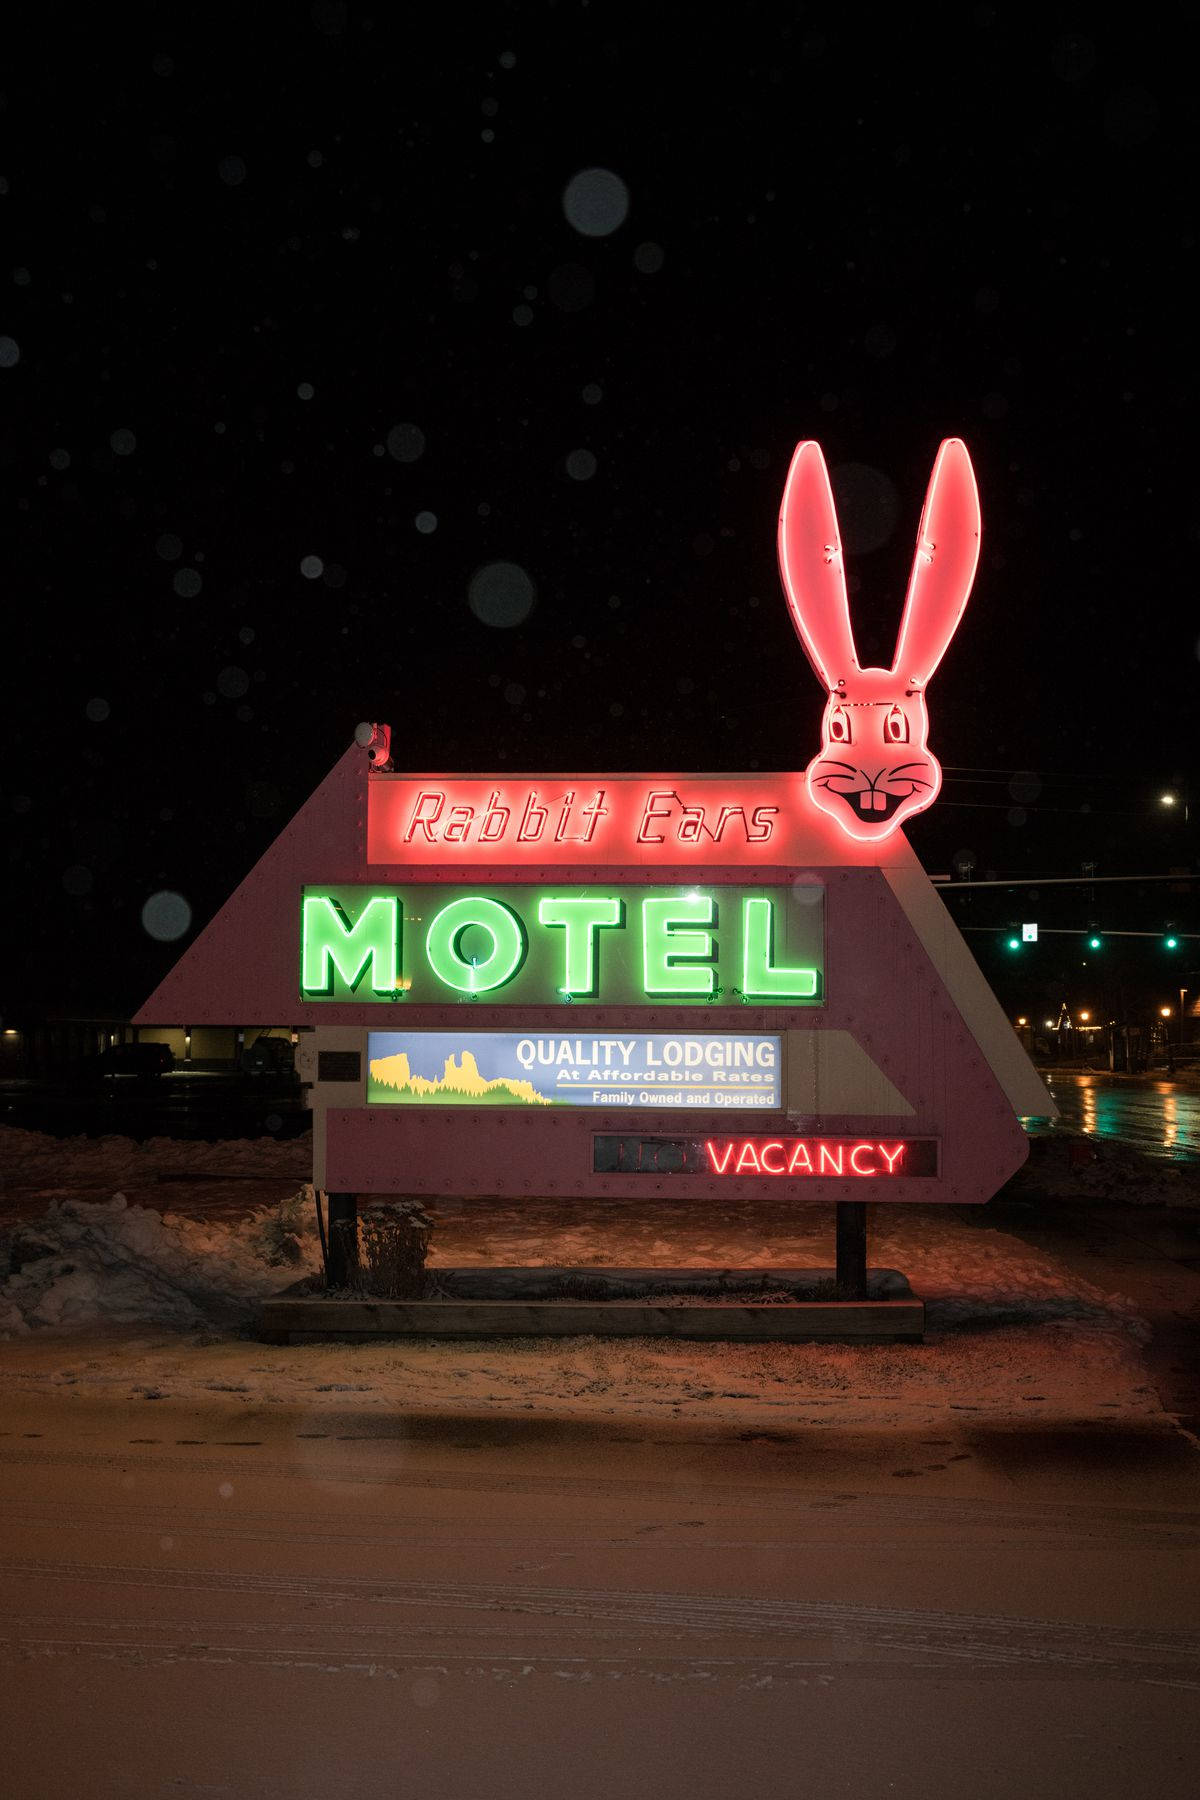 Neon sign at the Rabbit Ears Motel as the name of the hotel with a face of a bunny.